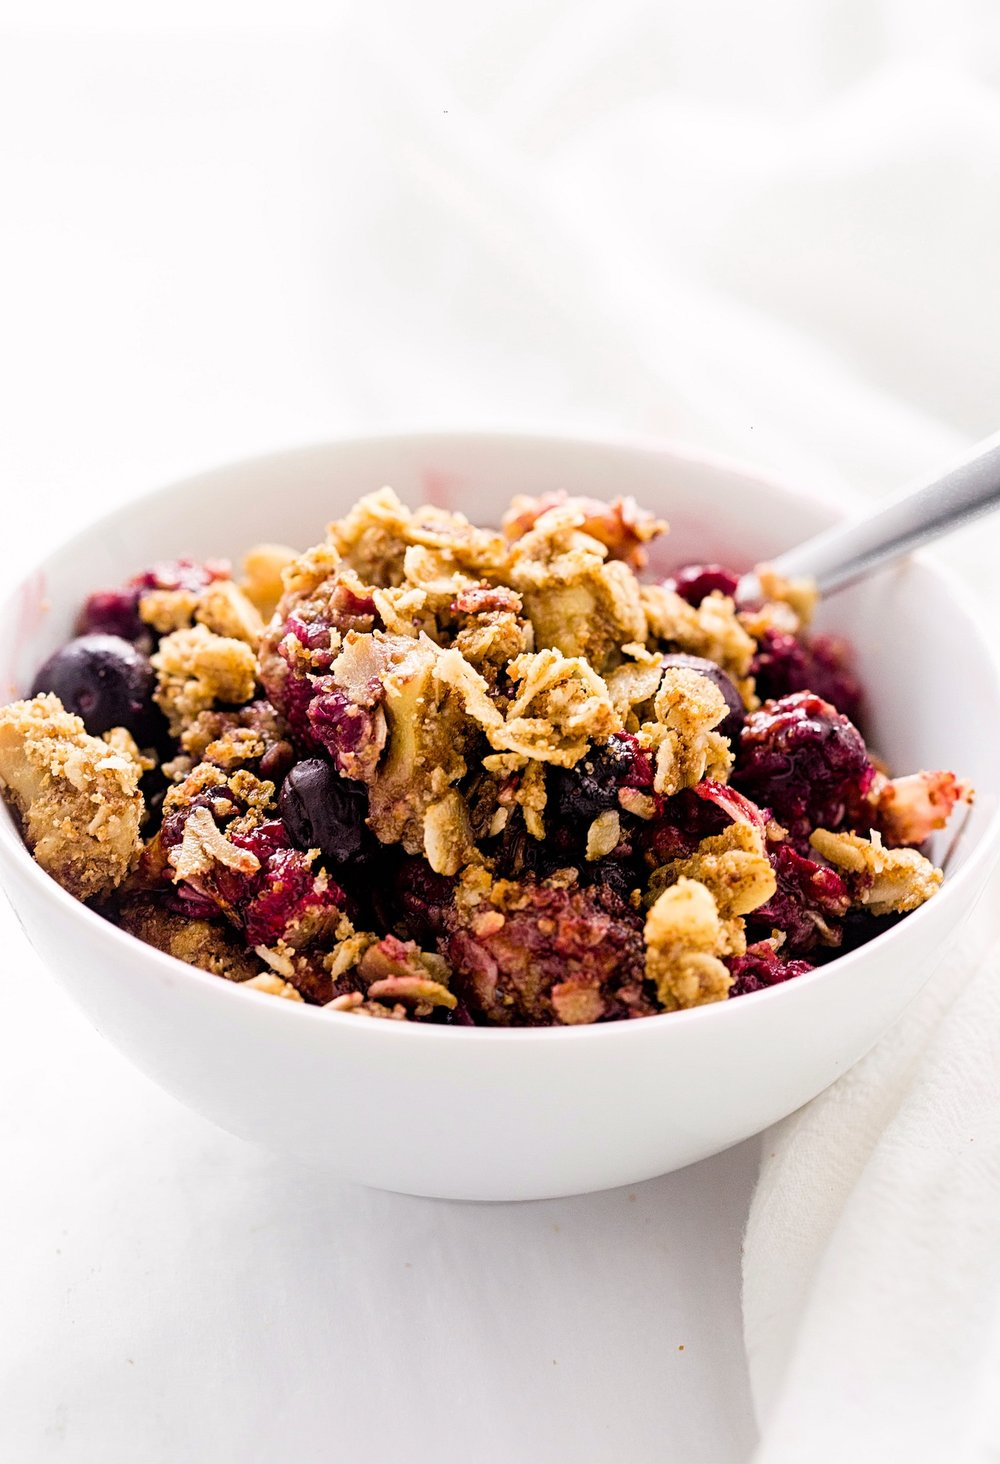 gf berry crumble 7.jpgWholesome Gluten-Free Mixed Berry Crumble : tart, sweet berries topped with an oaty, nutty, delicious crumble. Gluten-free and refined sugar free!